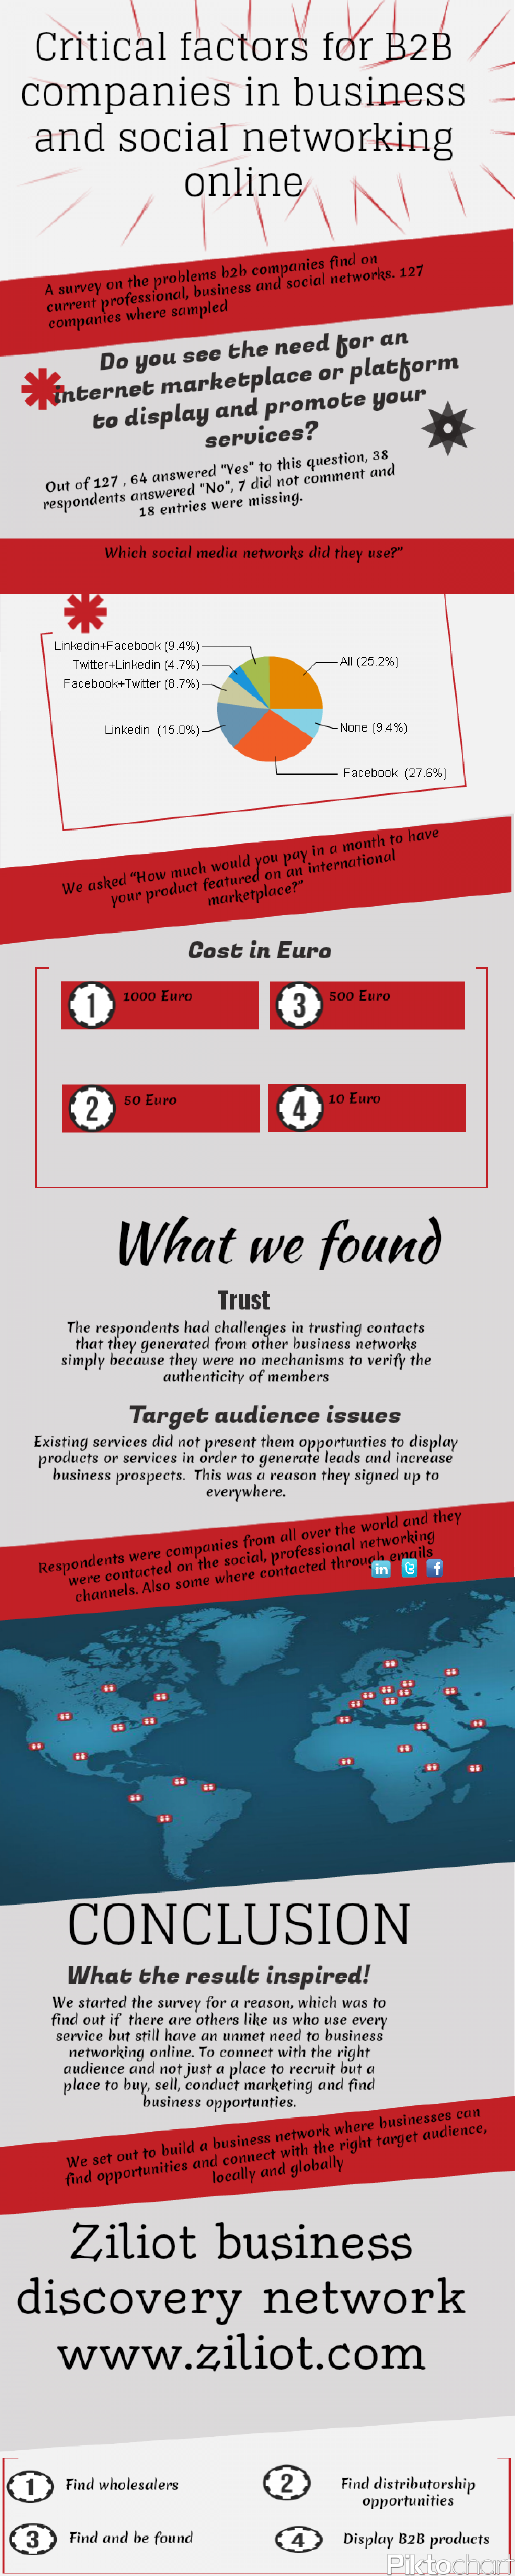 Criticals factor for B2B companies in business and social networking Infographic